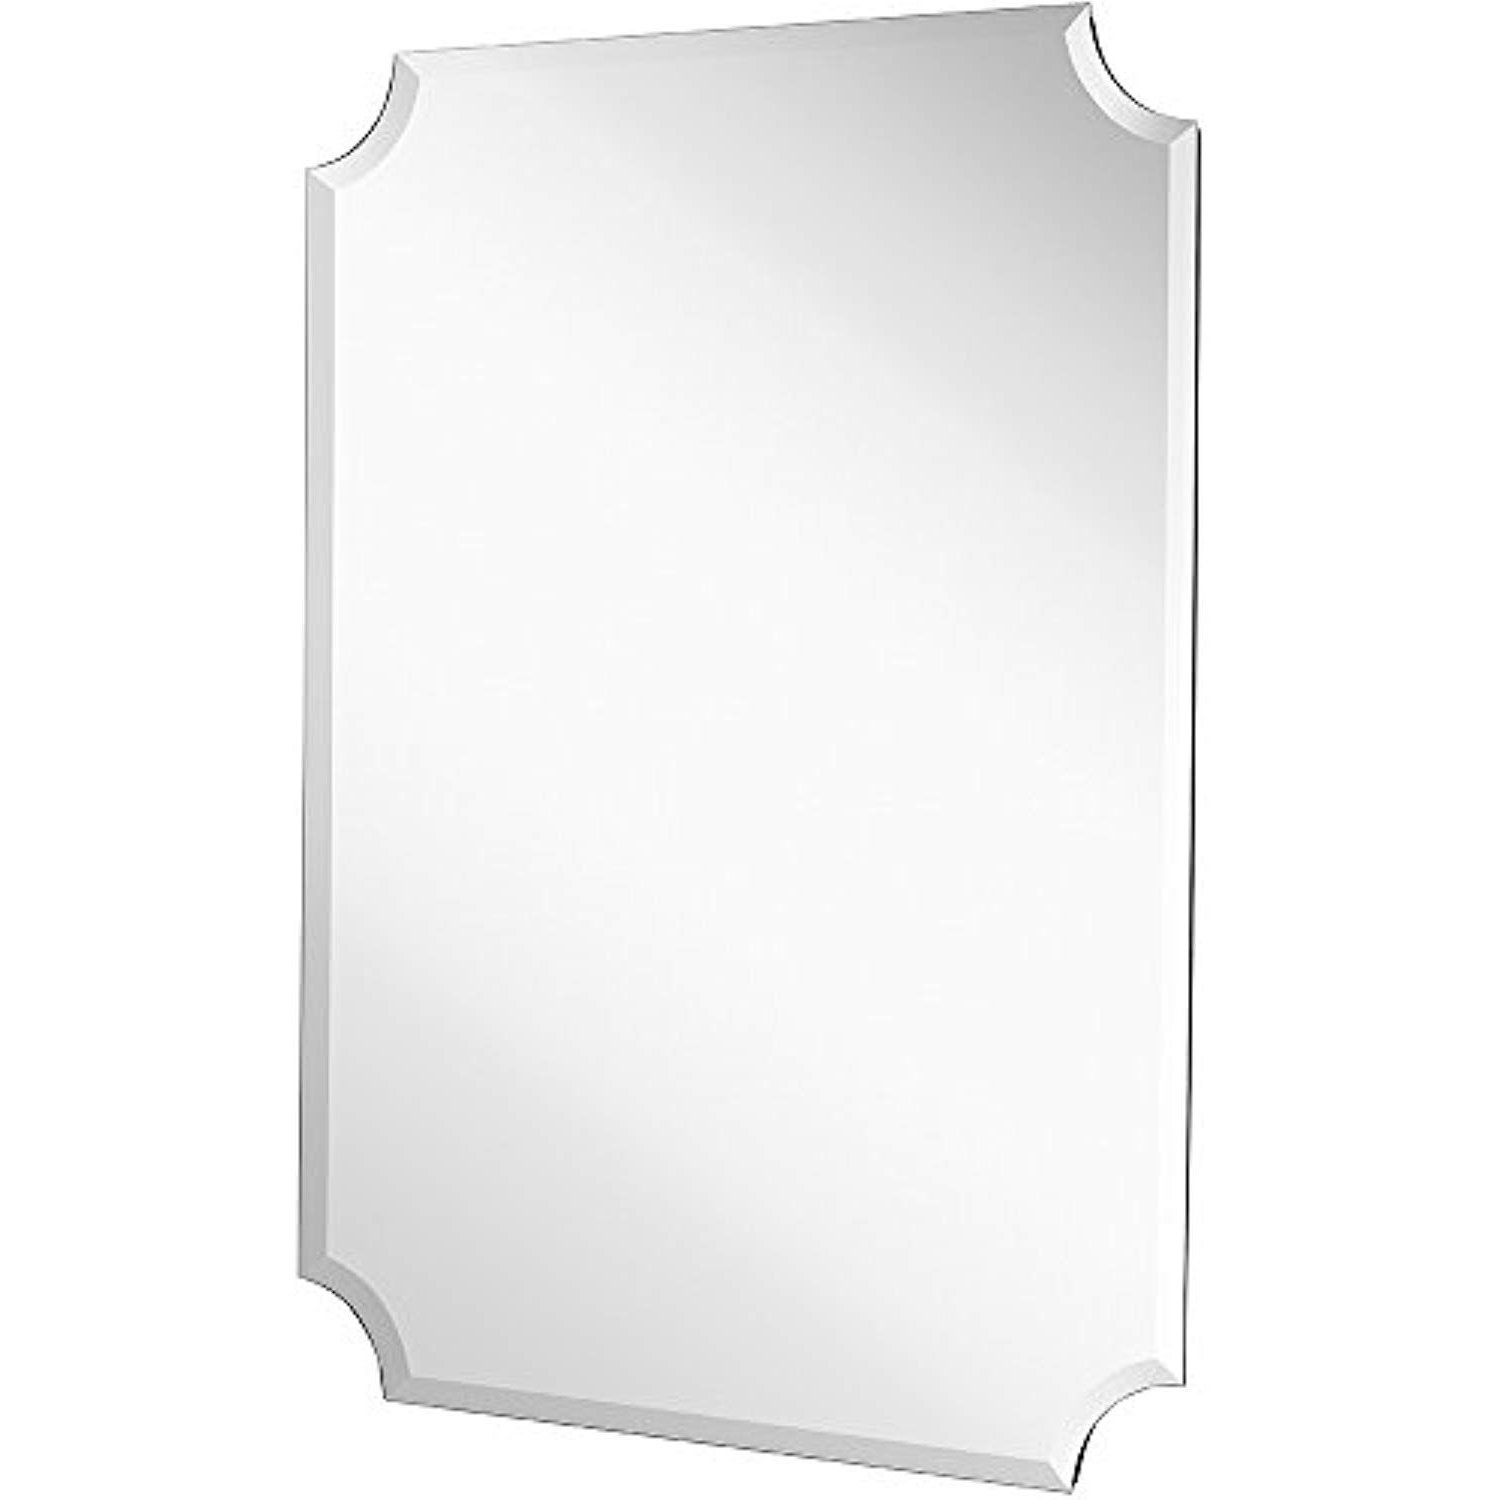 Dariel Tall Arched Scalloped Wall Mirrors Within Most Recent Large Beveled Scalloped Edge Rectangular Wall Mirror (View 9 of 20)